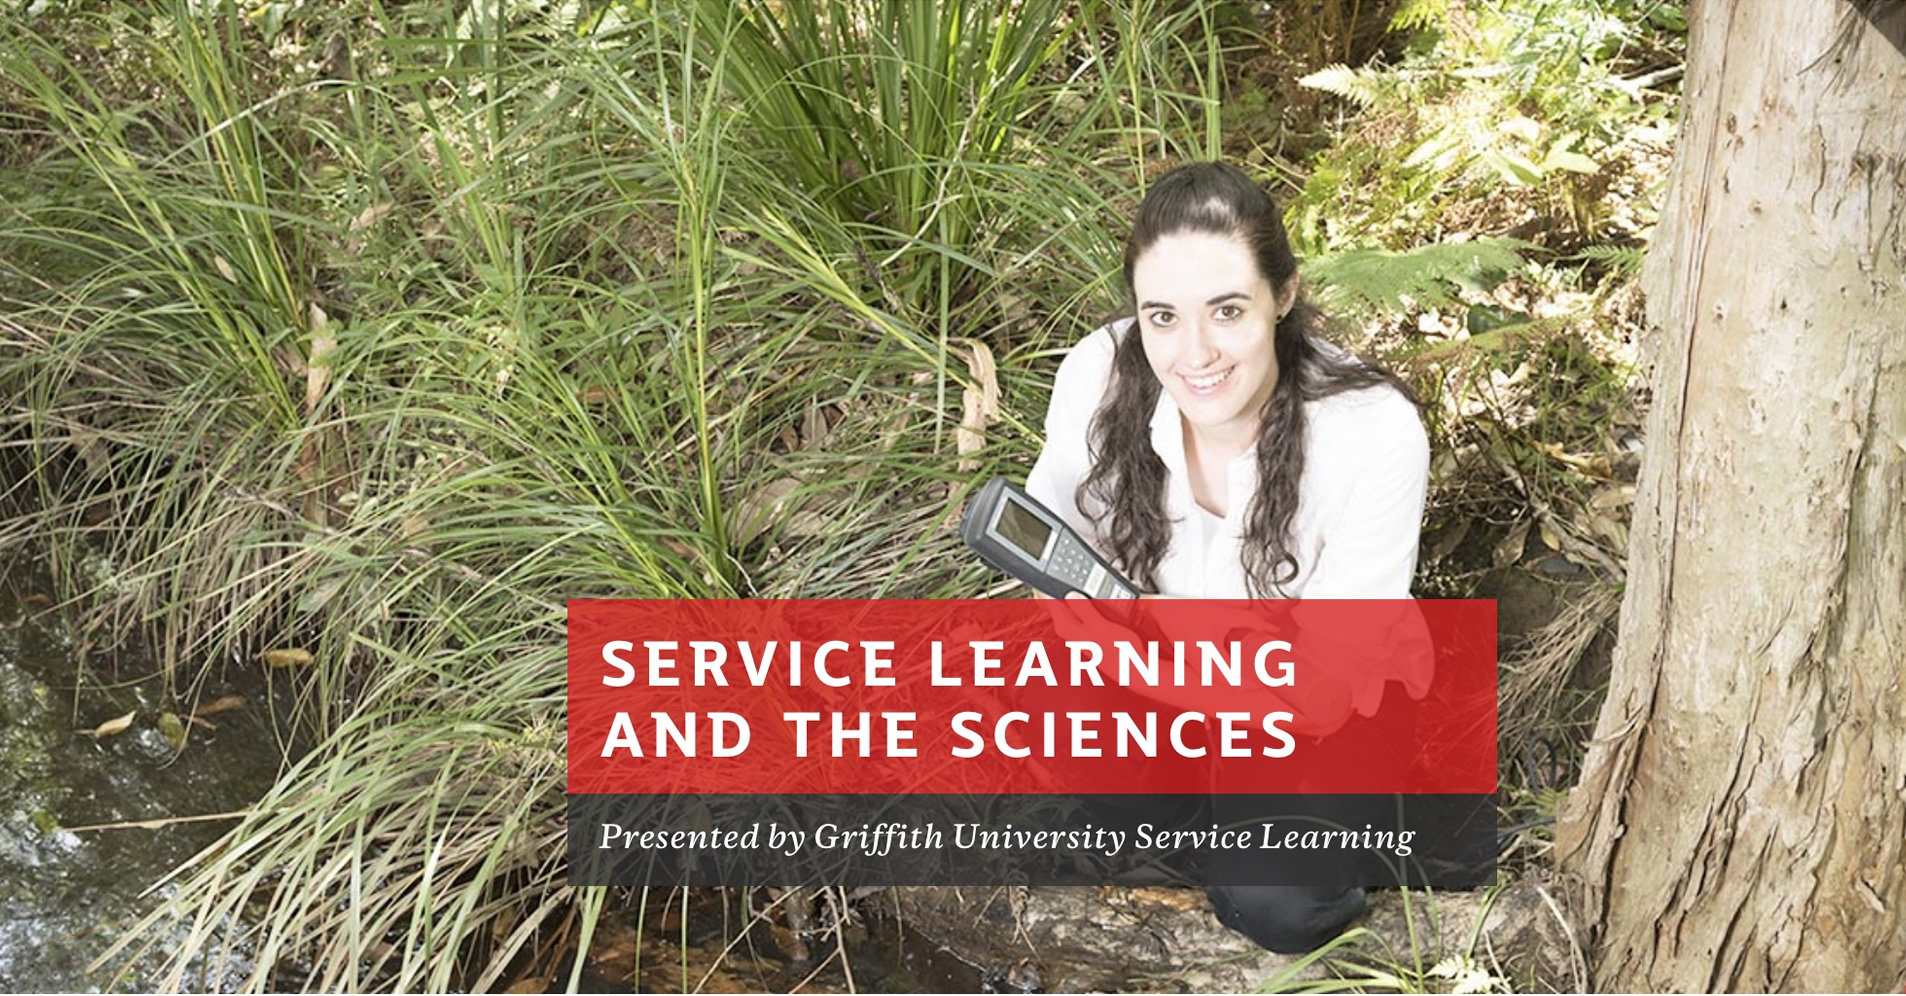 'Service Learning and the Sciences'